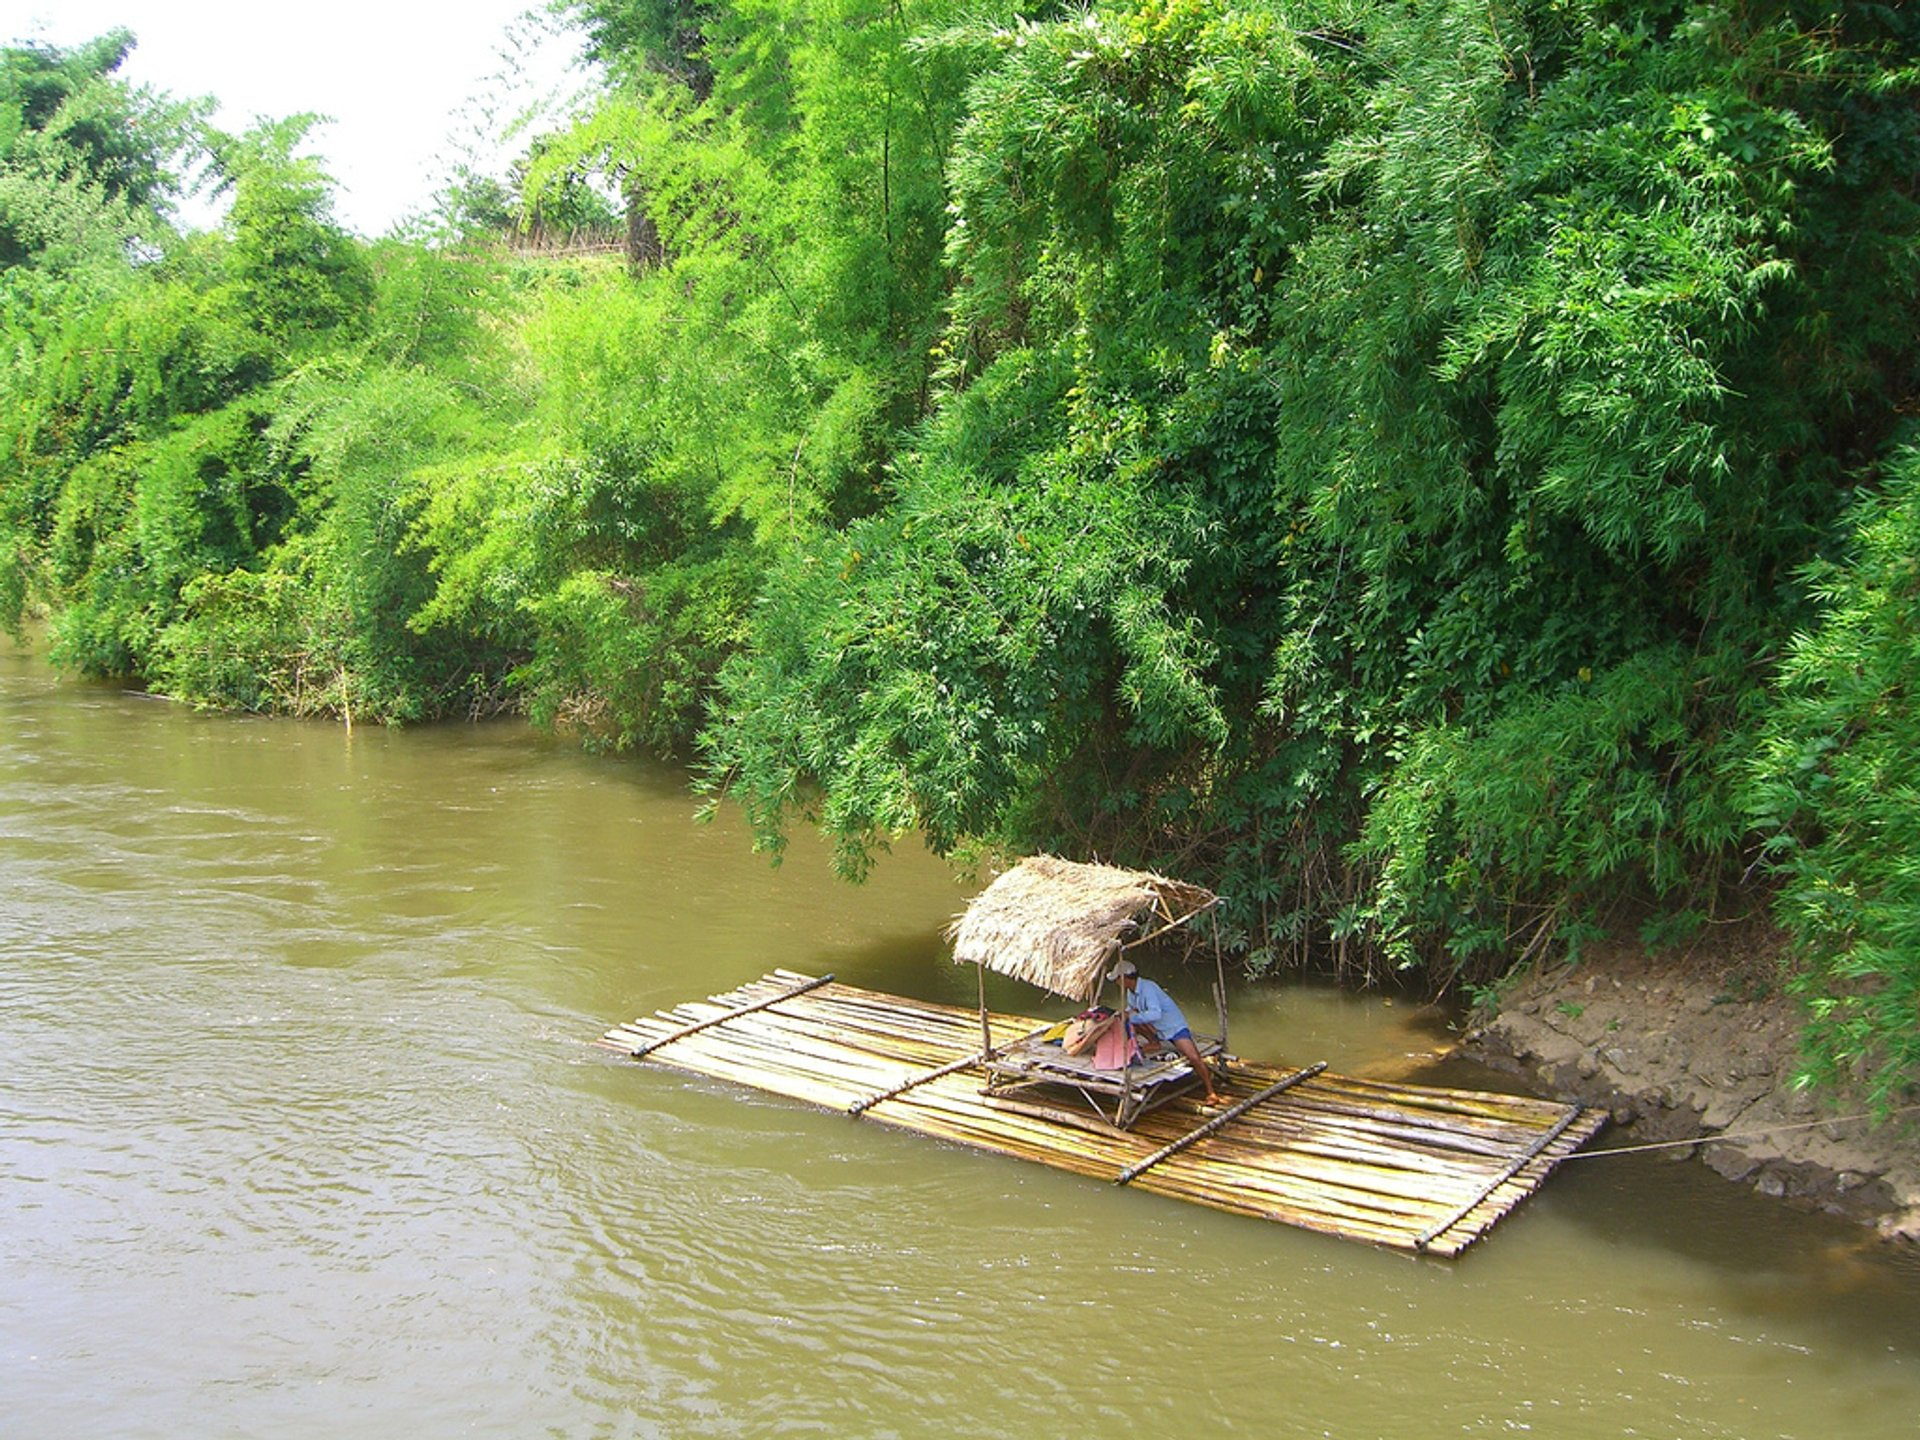 Bamboo Rafting During Dry Season in Thailand - Best Season 2020